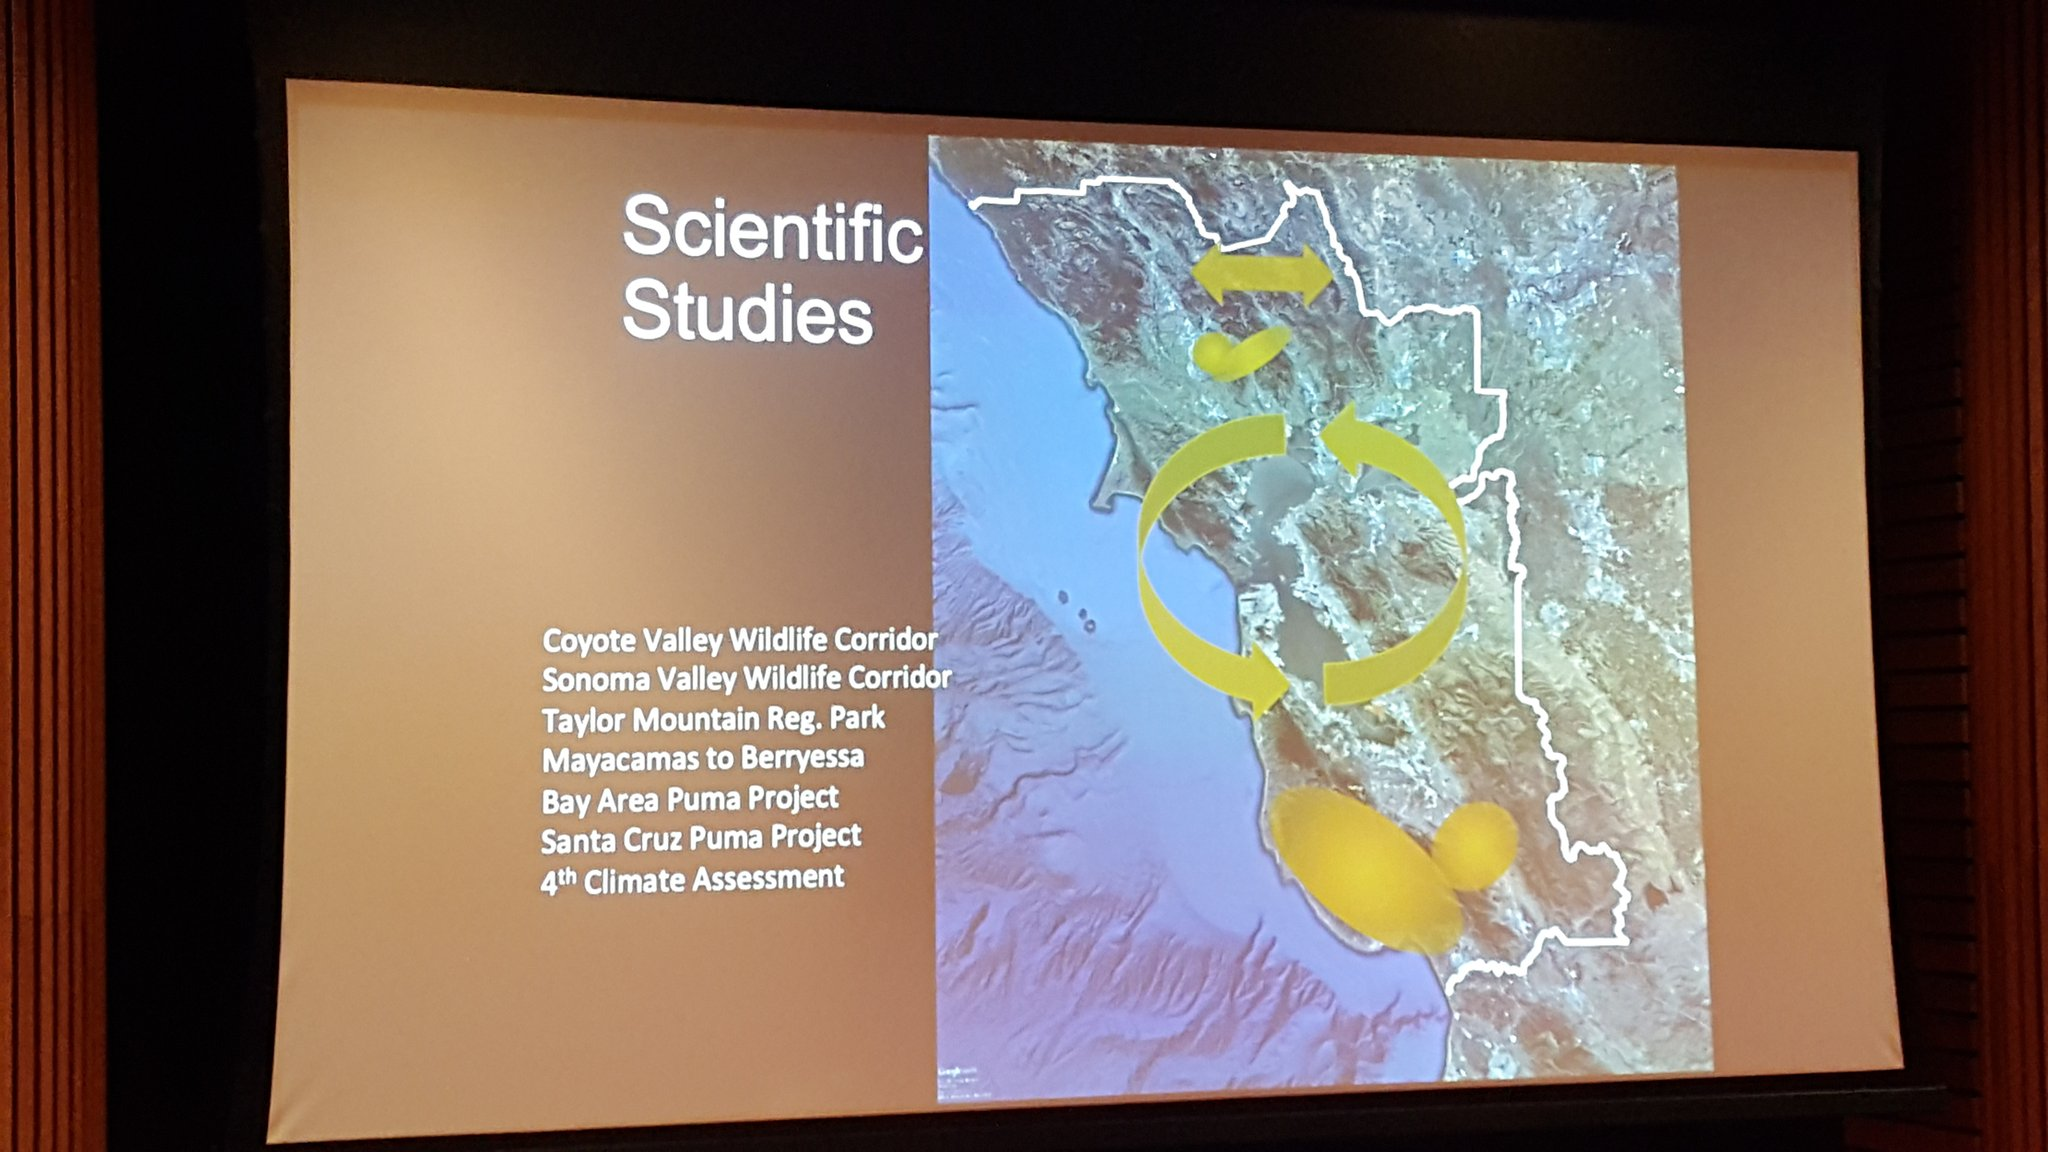 Lots of amazing #science going into the Bay Area's wildlife corridors! @BA_OPENSPACE #OSCWildlife https://t.co/wHjSPAhm0Y